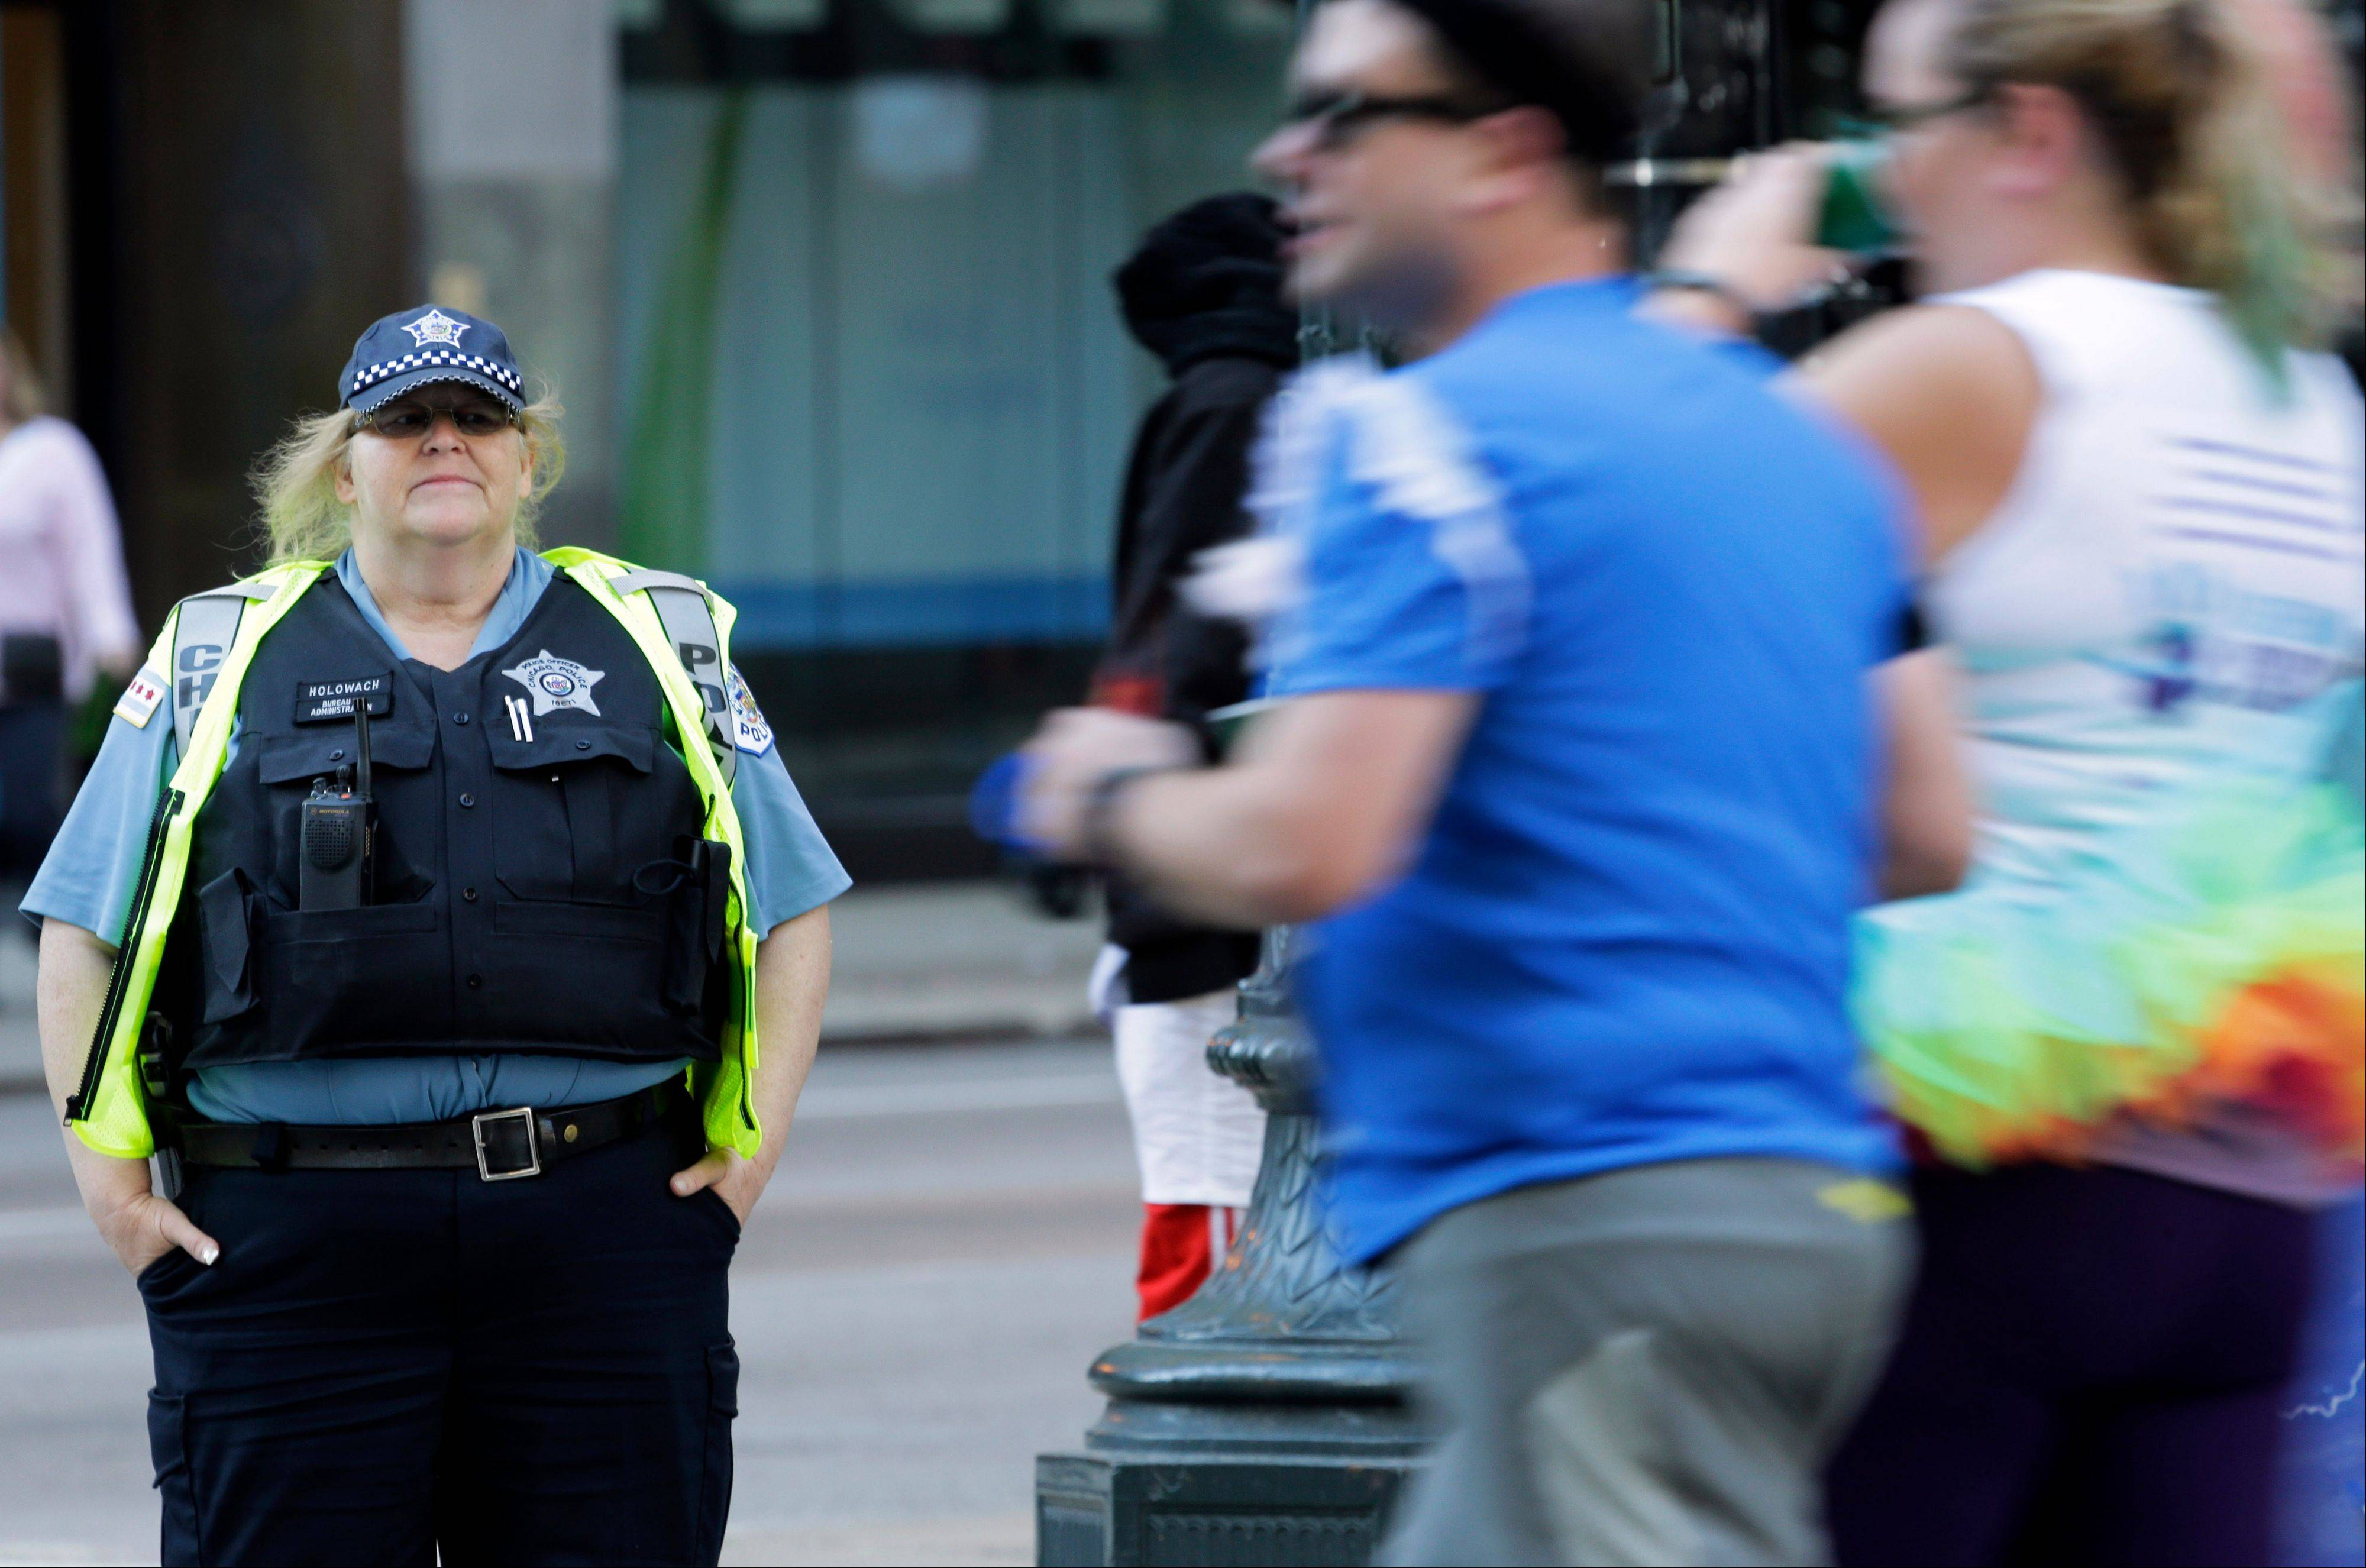 A Chicago police officer watches runners during the annual Chicago Marathon in Chicago, Sunday, Oct. 13, 2013. The marathon is the first World Marathon Major in the United States since the Boston Marathon bombings last April and will be the most closely watched.